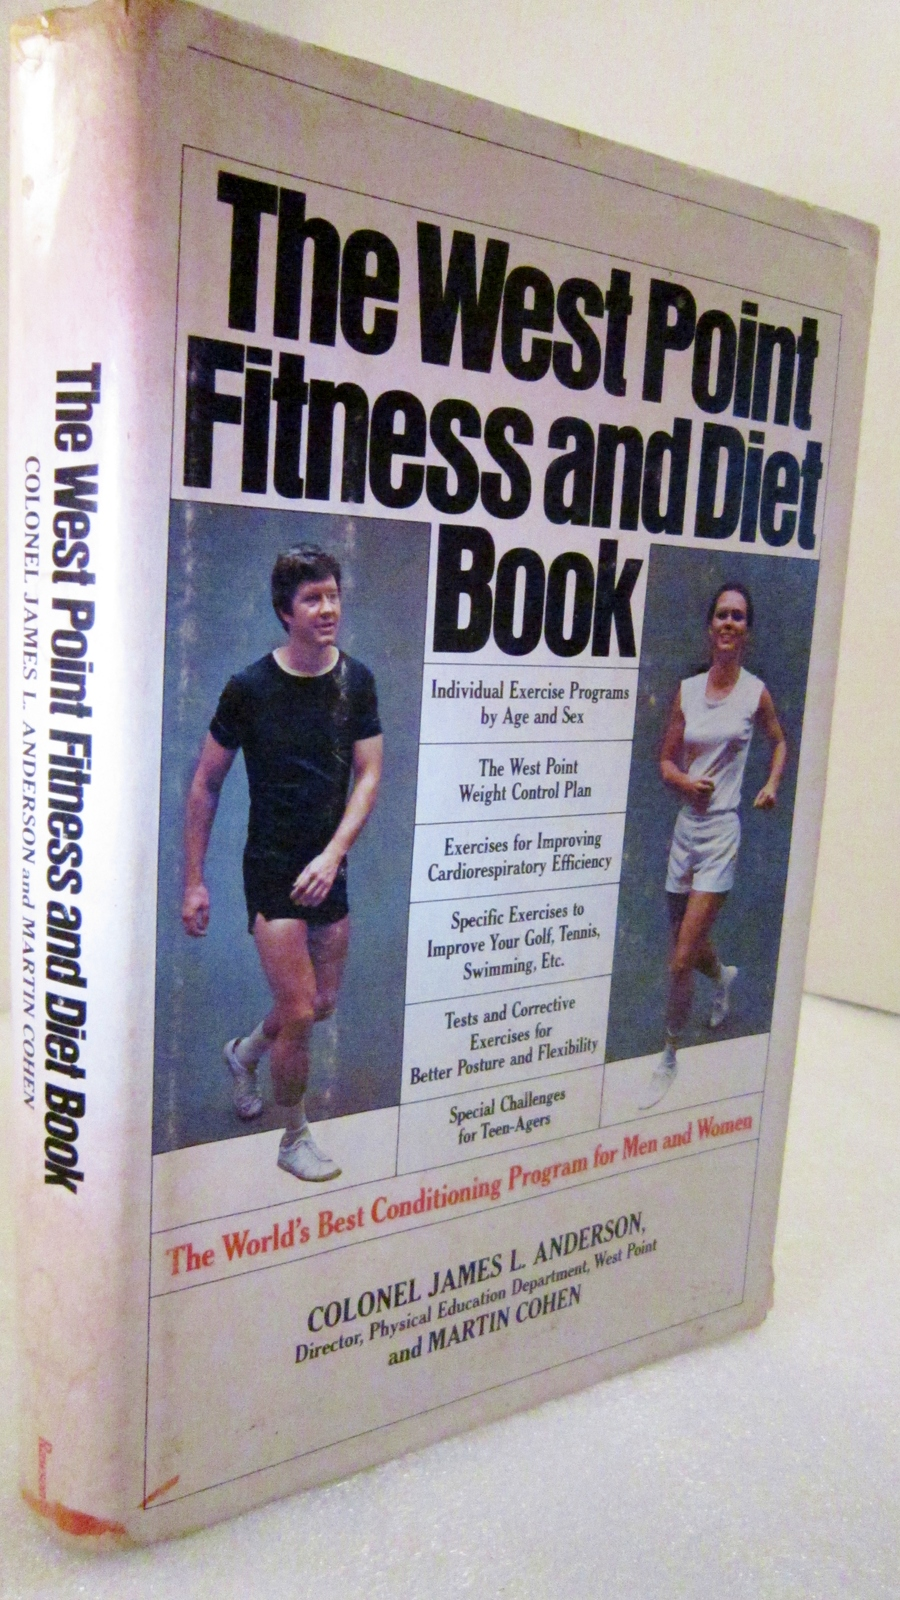 Primary image for West Point Fitness and Diet Book 1977 Col James L Anderson